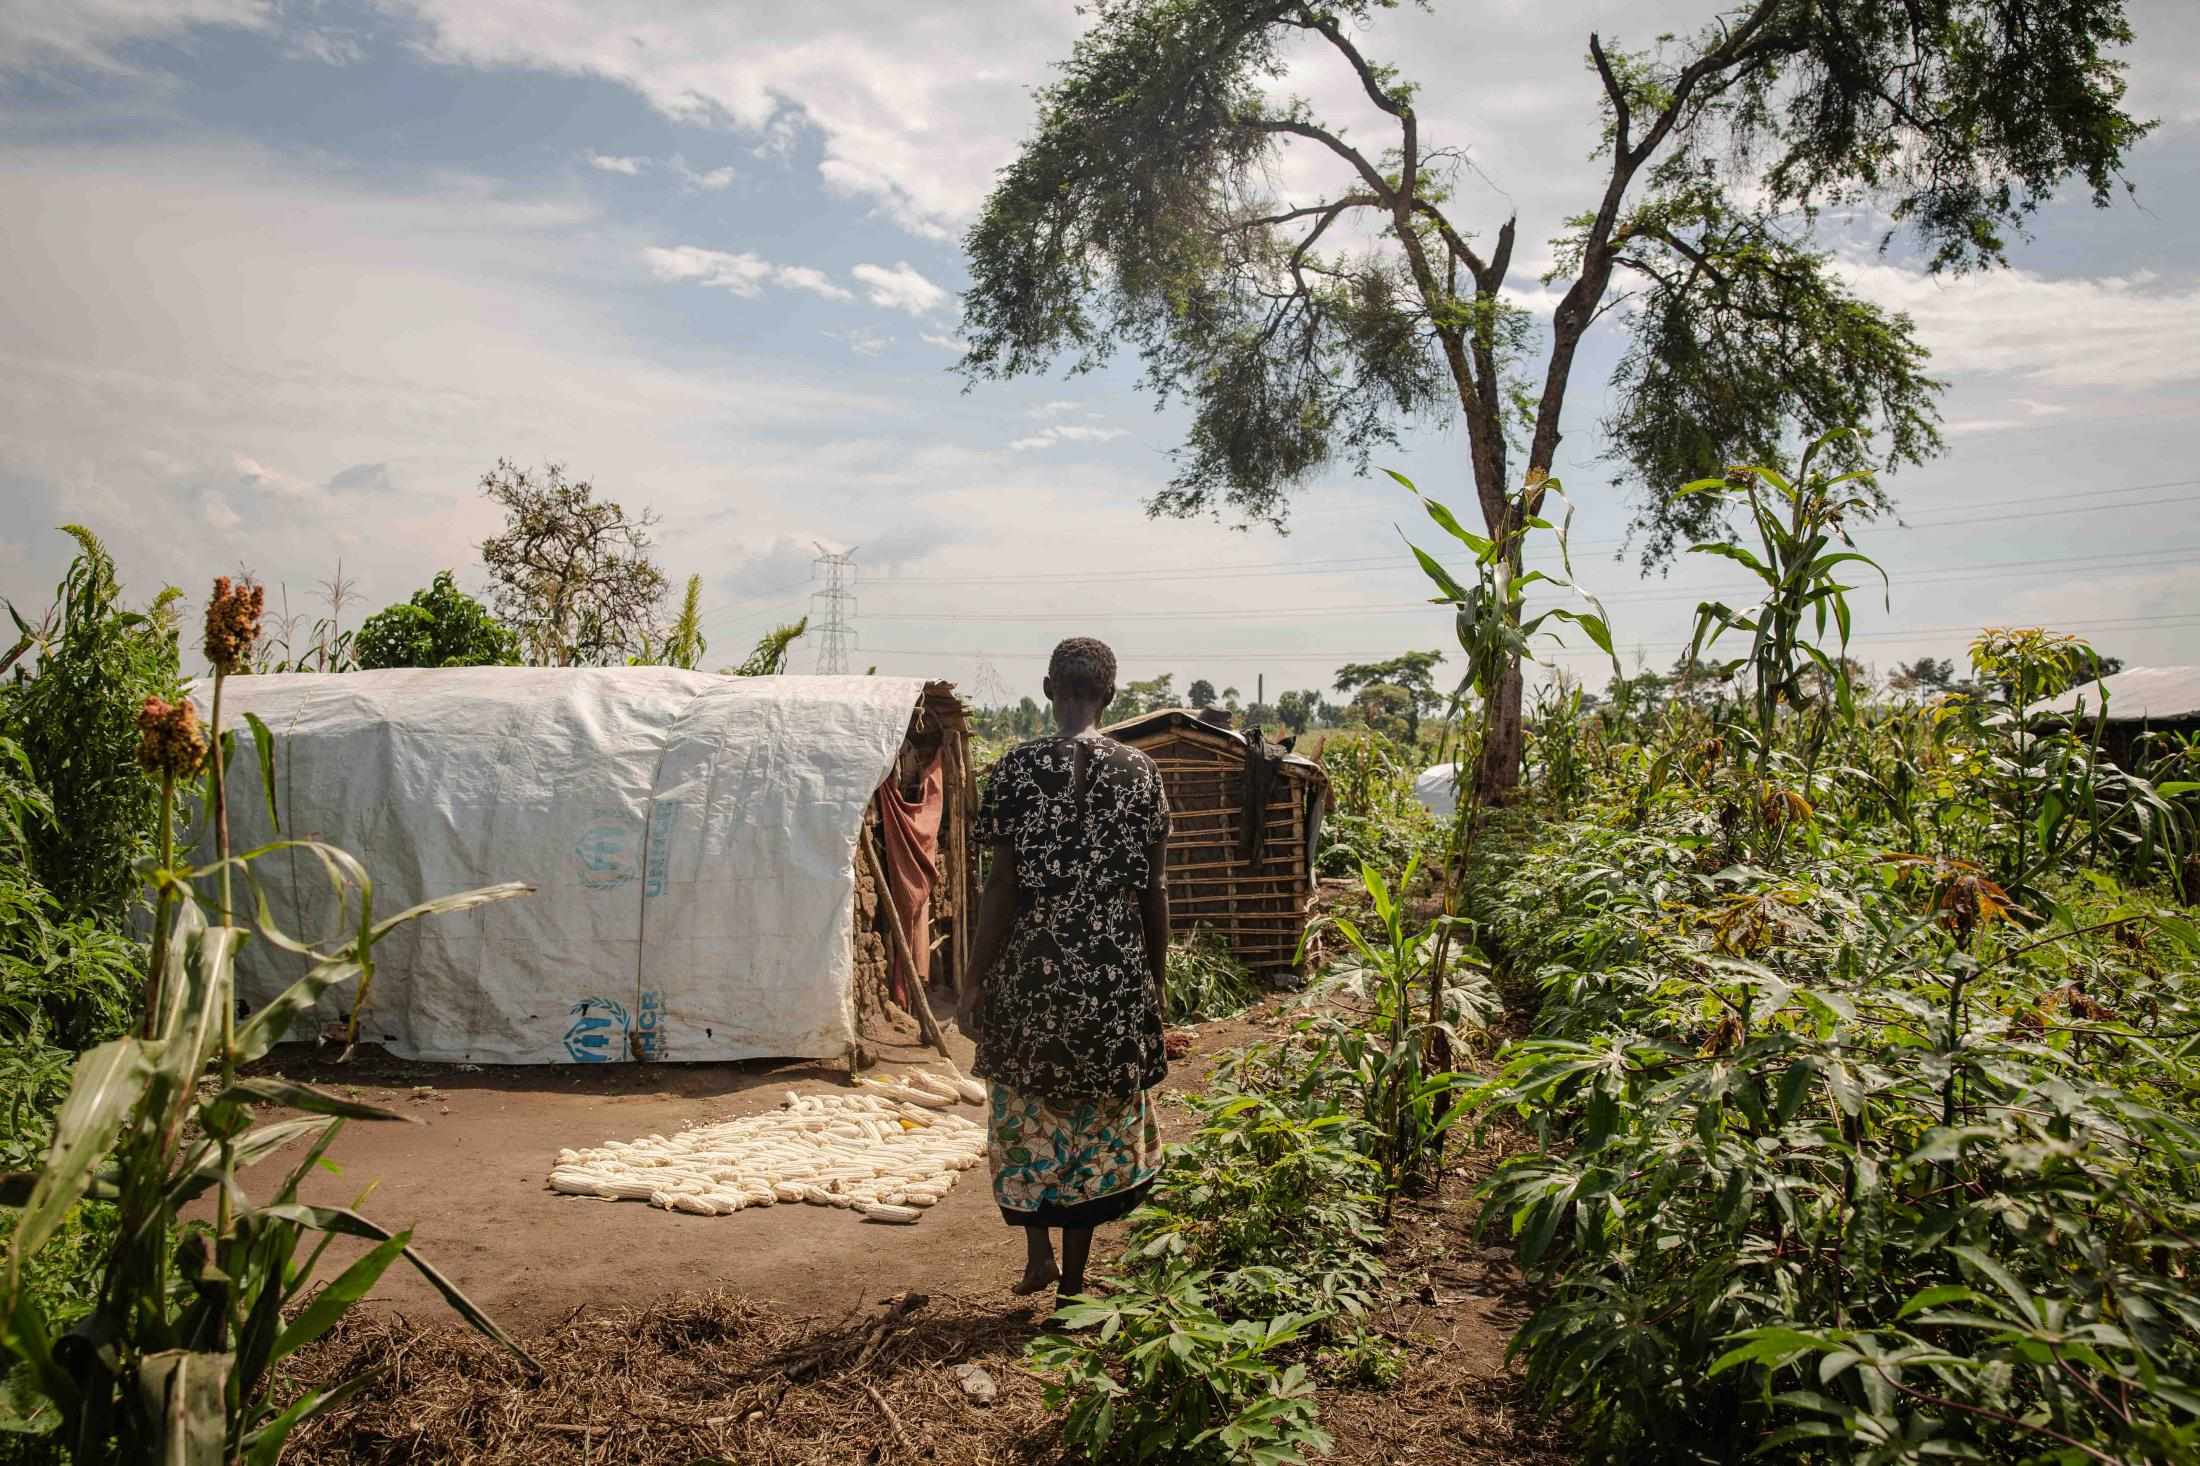 Oriem Jannette, 61, at her home in Kilima village, Kyangwali Refugee Settlement. Jannette lost her husband and three of her children during the 2000 war in DRC. She now lives in the settlement with her two grandchildren. For Norwegian Refugee Council.